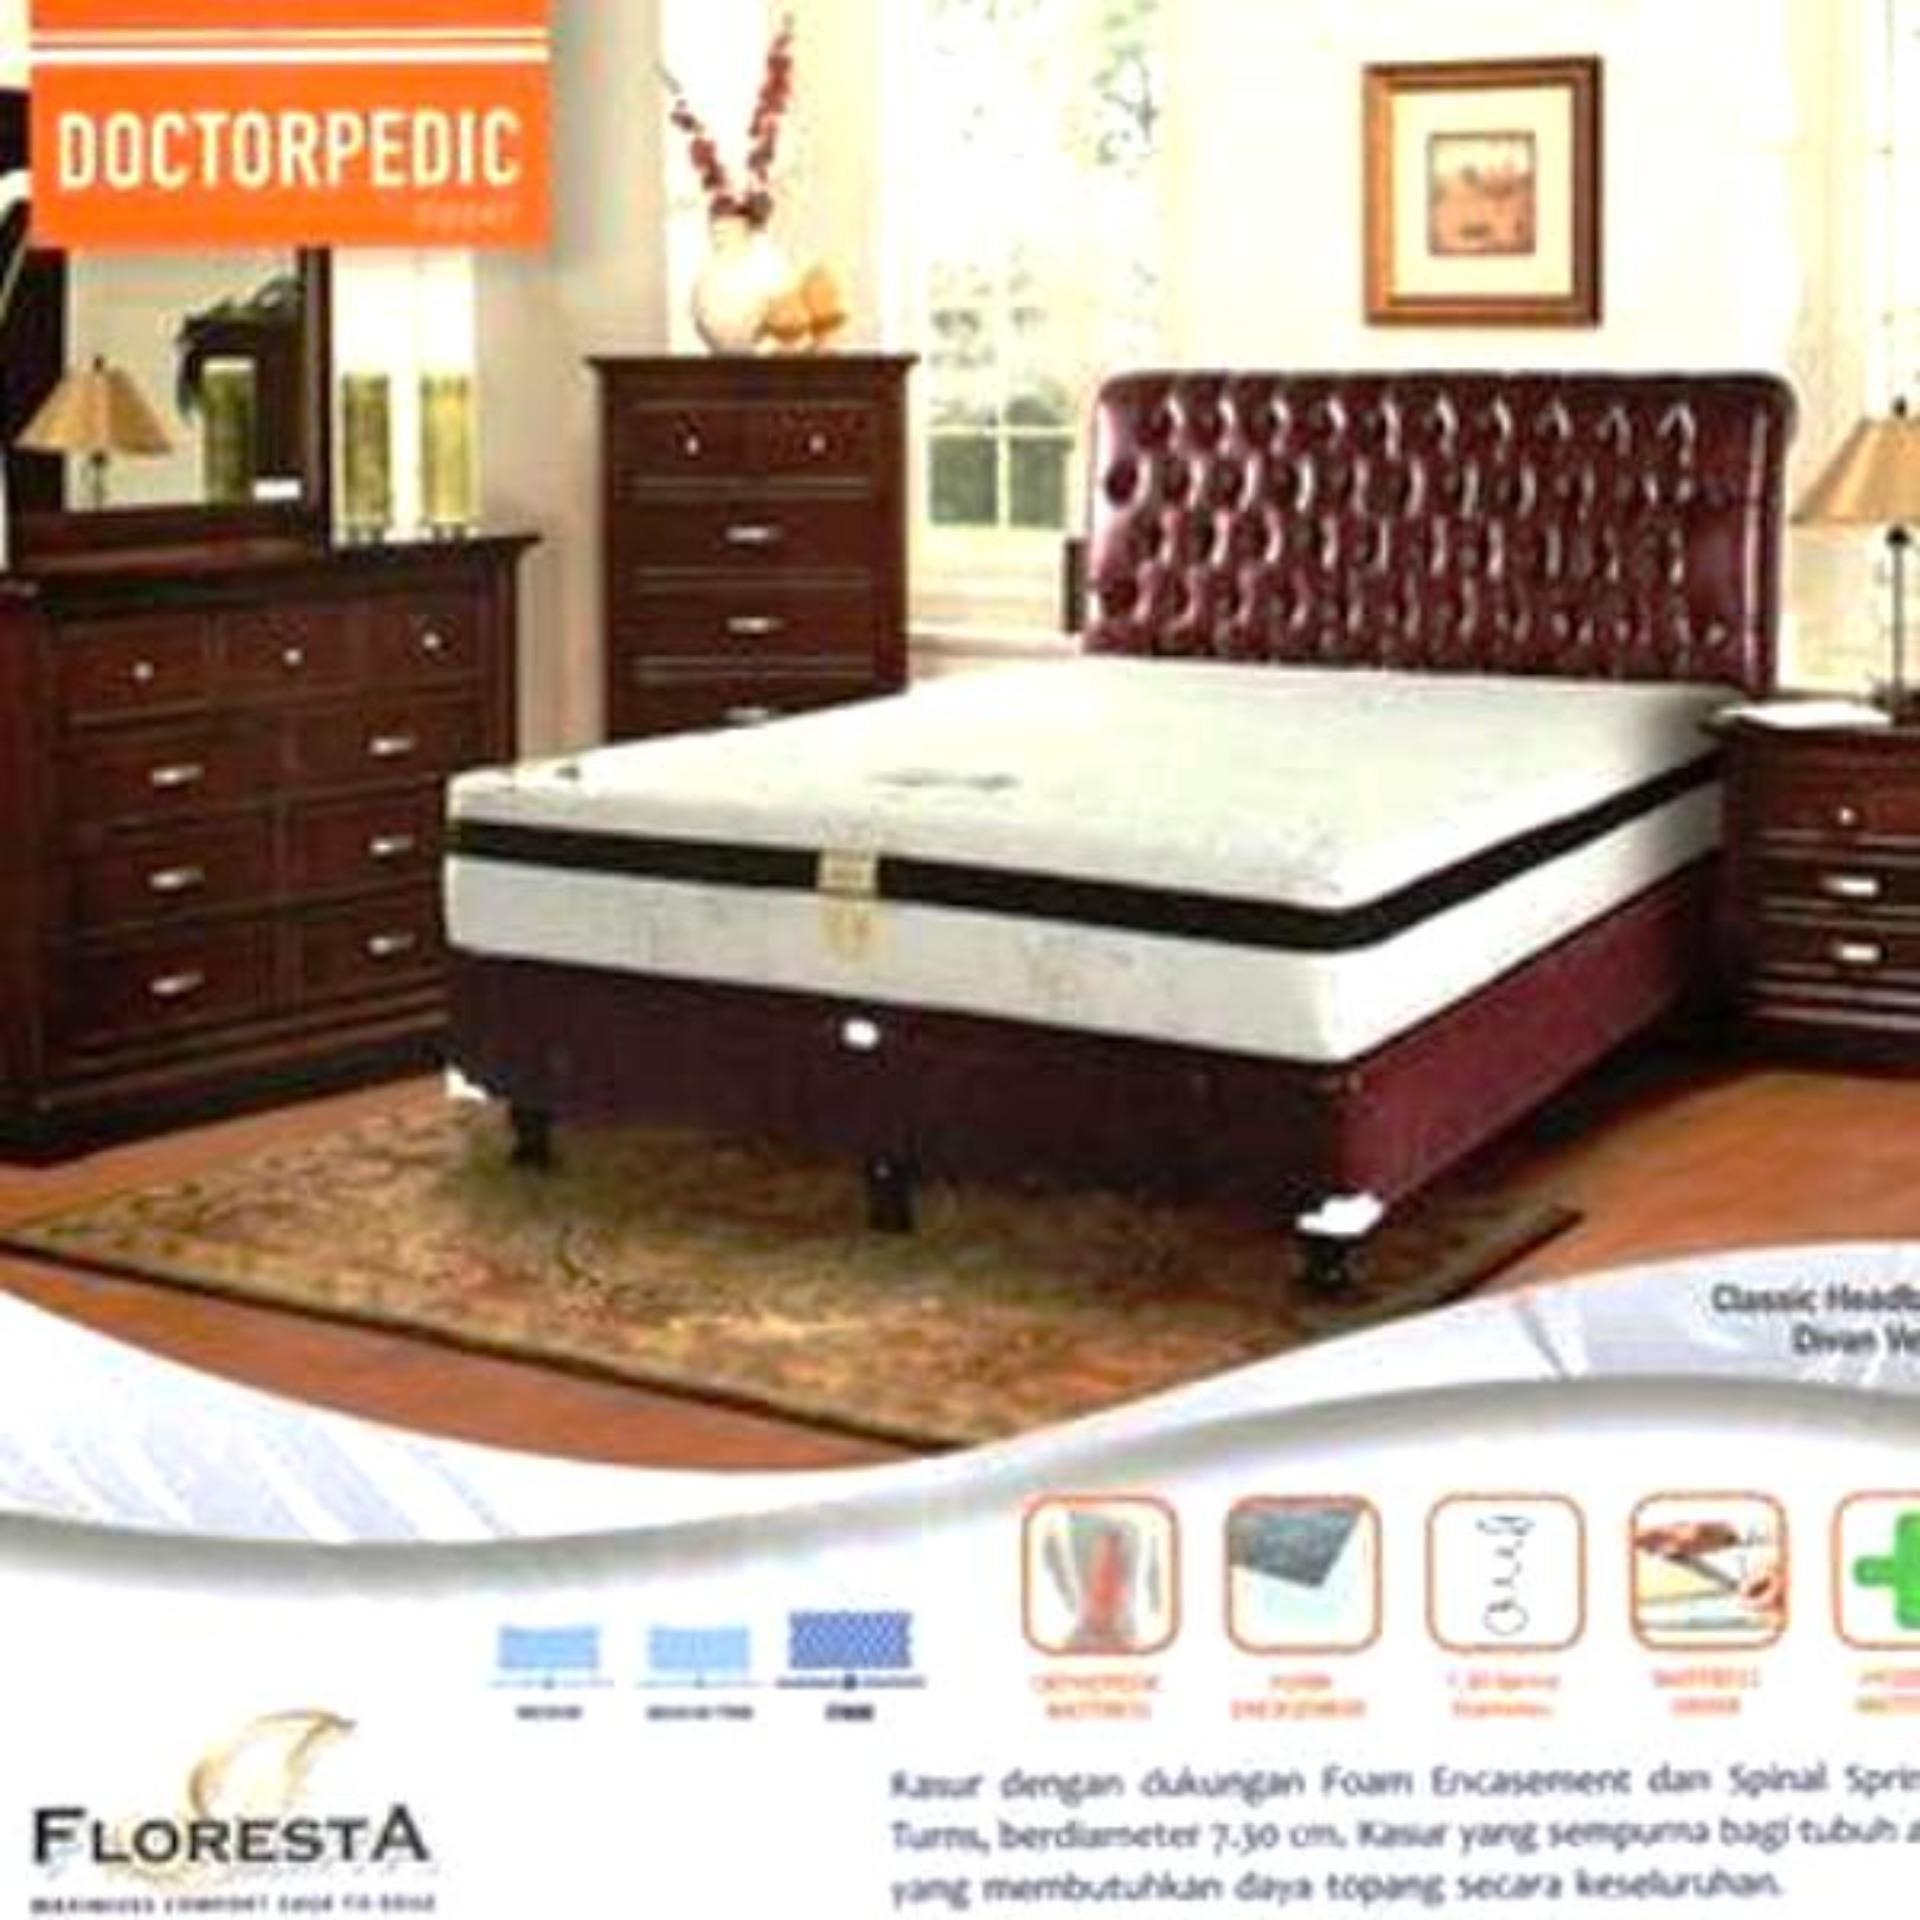 Floresta Springbed Doctorpedic Zipper clasic verona full set